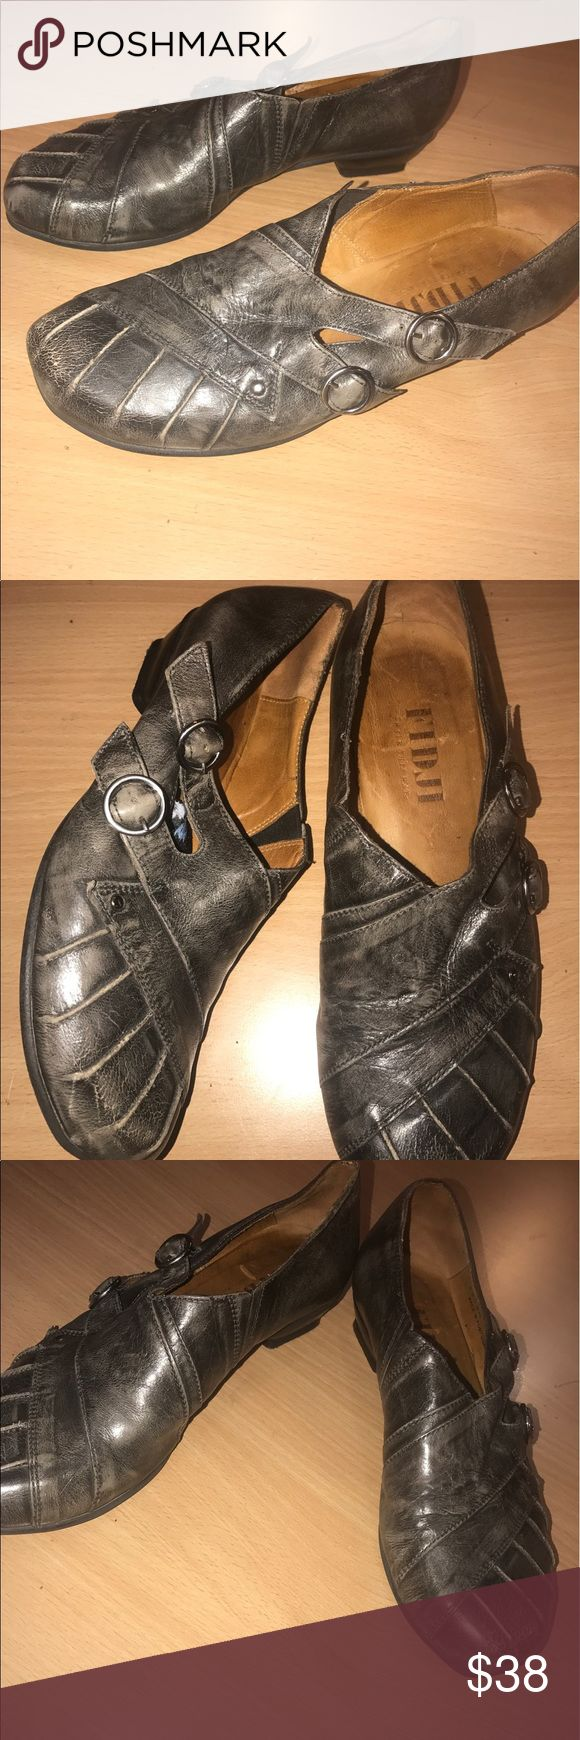 "Antiqued grey European Fidji casual comfy slip on Marked size 37 1/2, antiques/ distressed dark gray slip ons. 1.5"" heel. Look like they've been worn once, in excellent condition. Made in Portugal. Leather. Fidji Shoes"